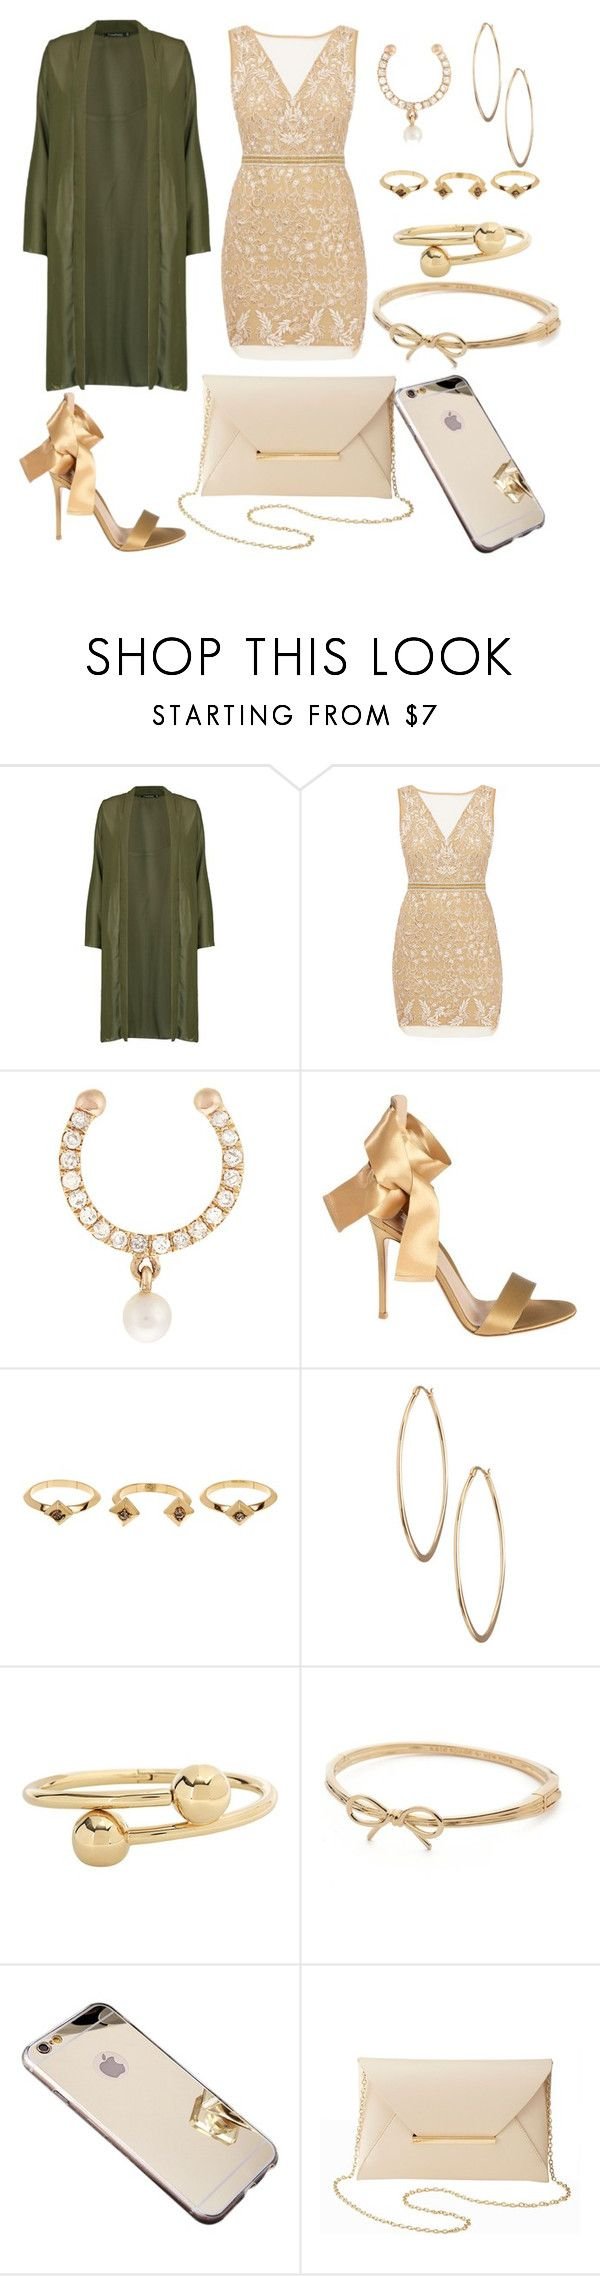 """goldddddd"" by jadabr ❤ liked on Polyvore featuring Boohoo, Nicole Miller, Anissa Kermiche, Gianvito Rossi, House of Harlow 1960, Lydell NYC, J.W. Anderson, Kate Spade and Charlotte Russe"